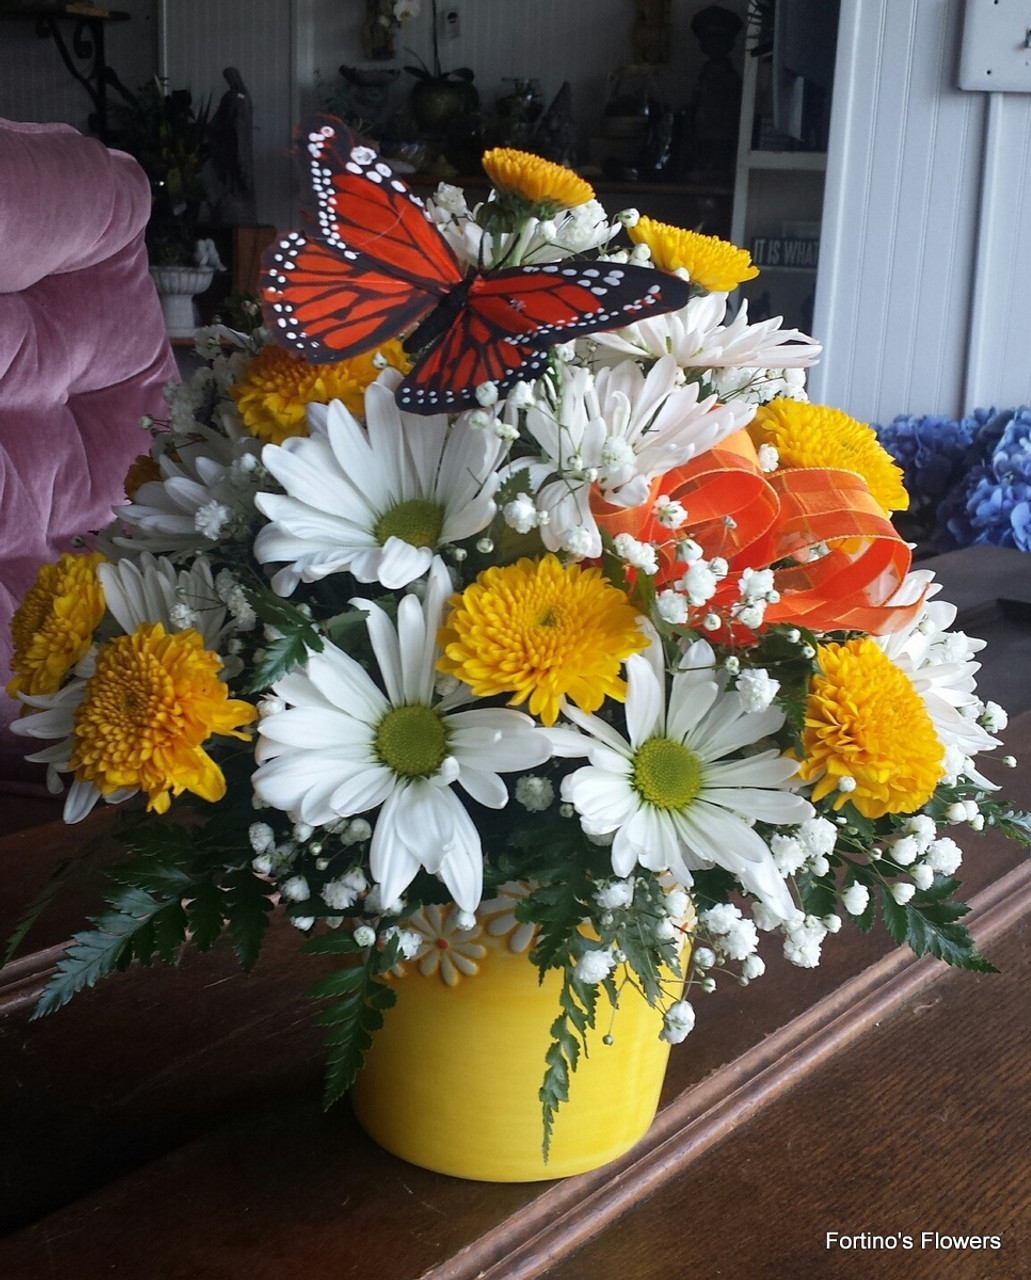 Delightful Daisies Fortinos Flowers And Gifts